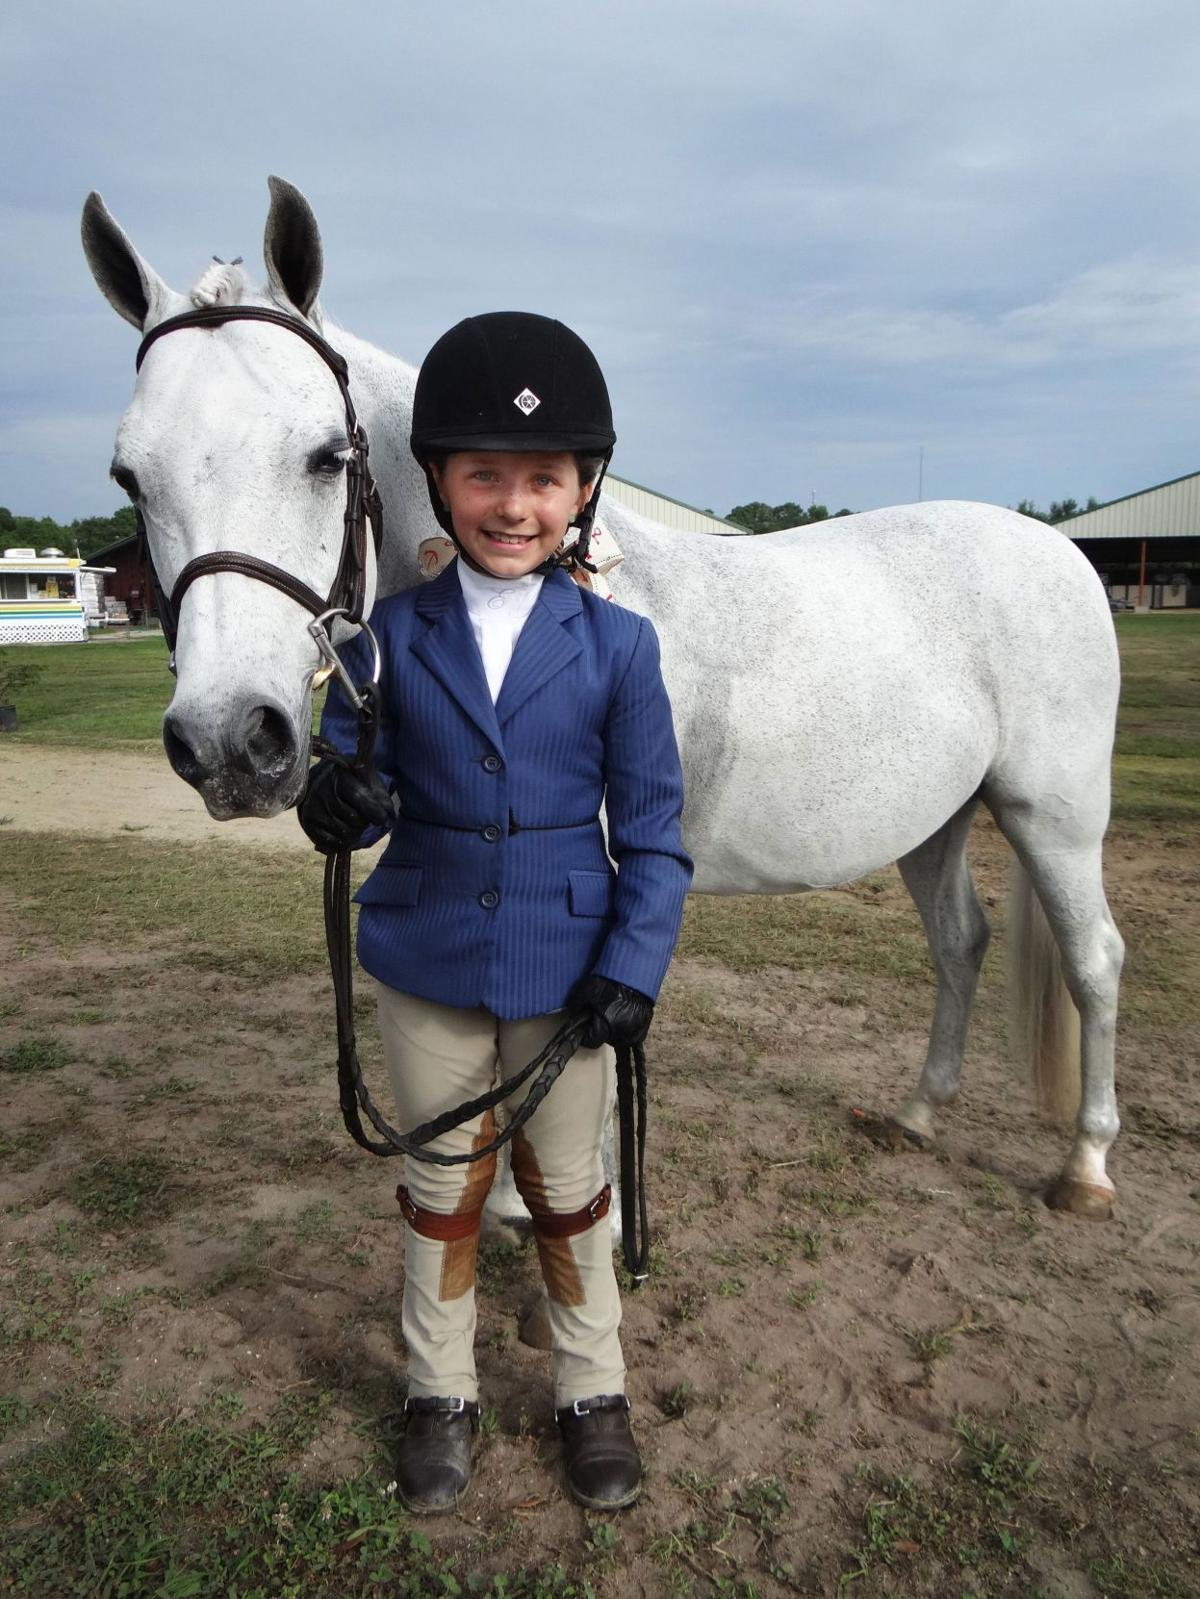 Charleston Summer Classic horse show celebrates equestrian competition and culture